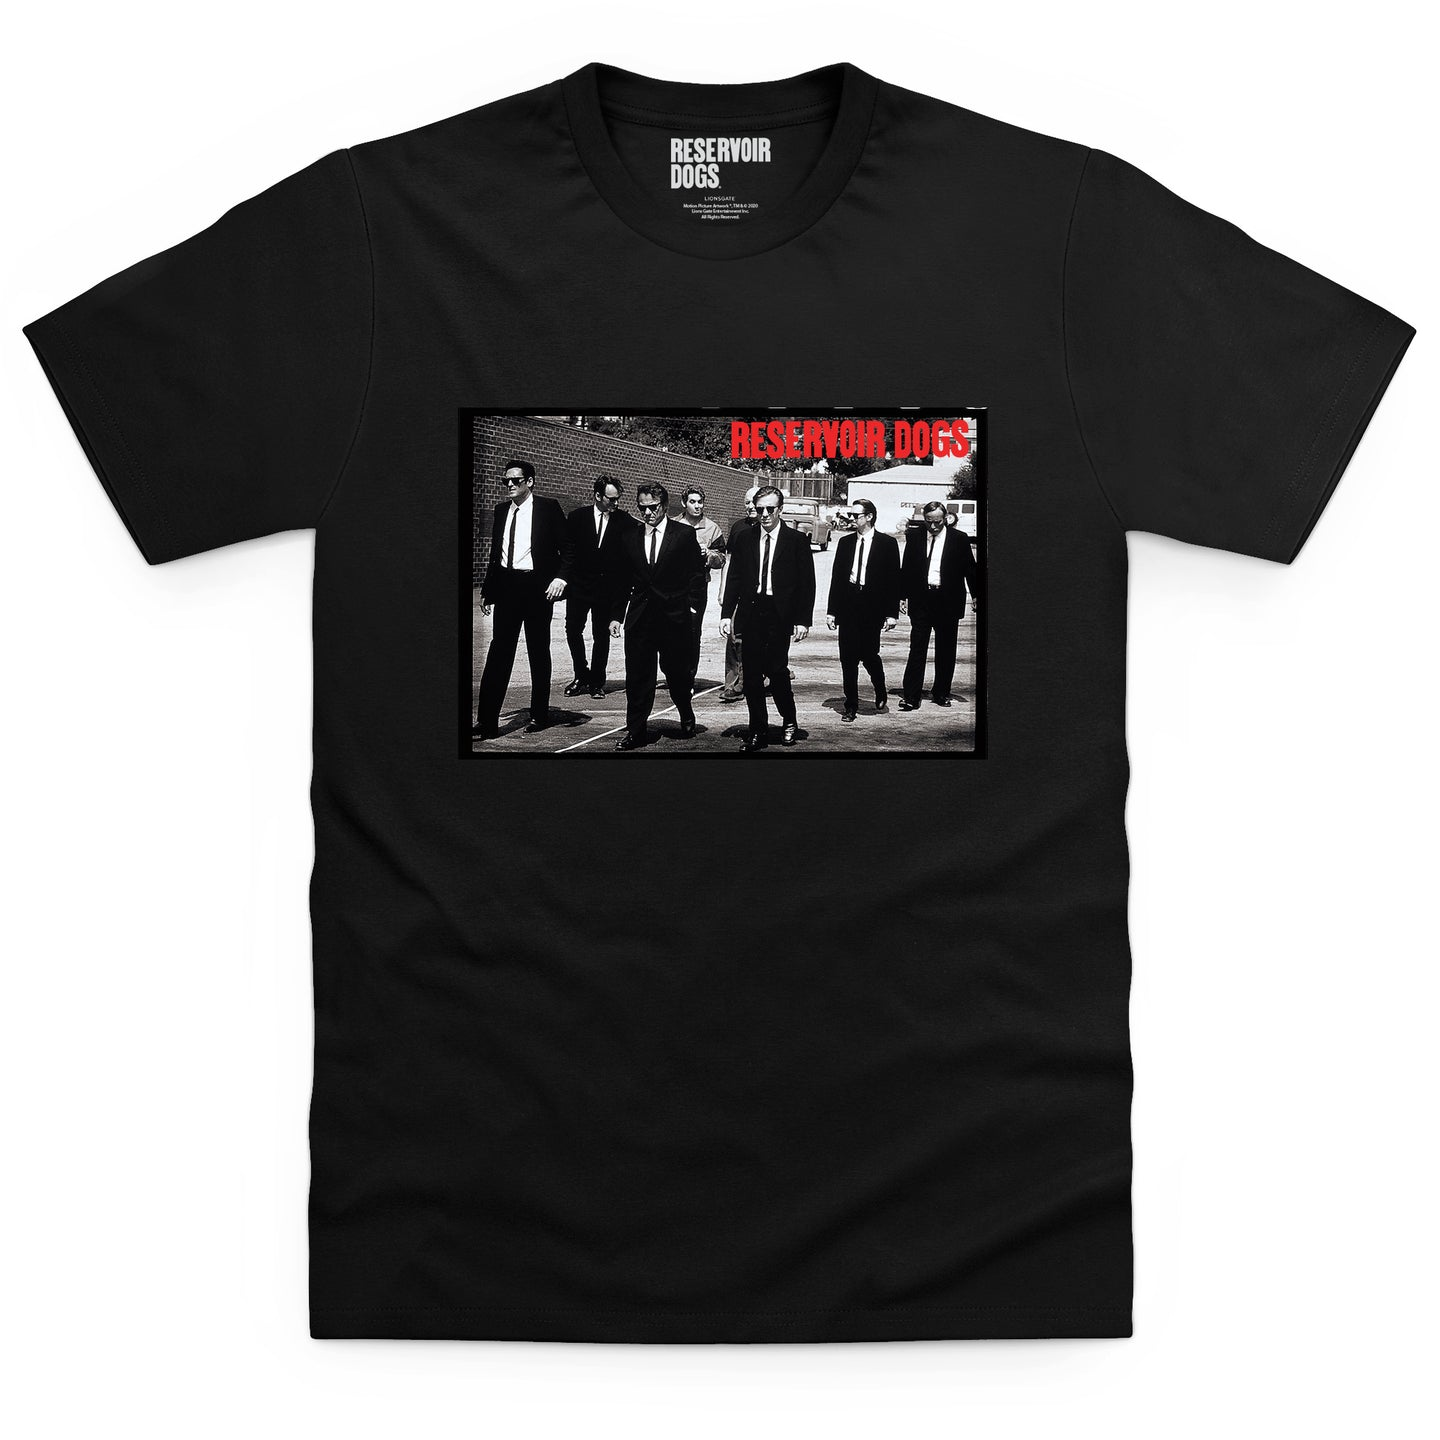 Reservoir Dogs Cast Black T-shirt